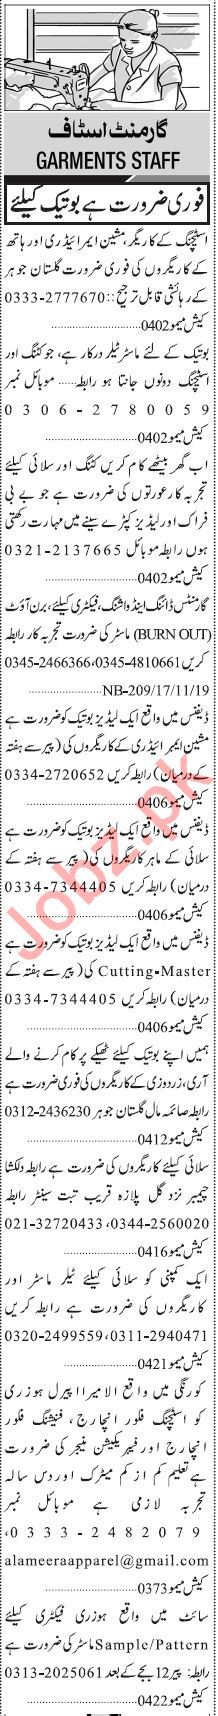 Jang Sunday Classified Ads 17th Nov 2019 for Garments Staff